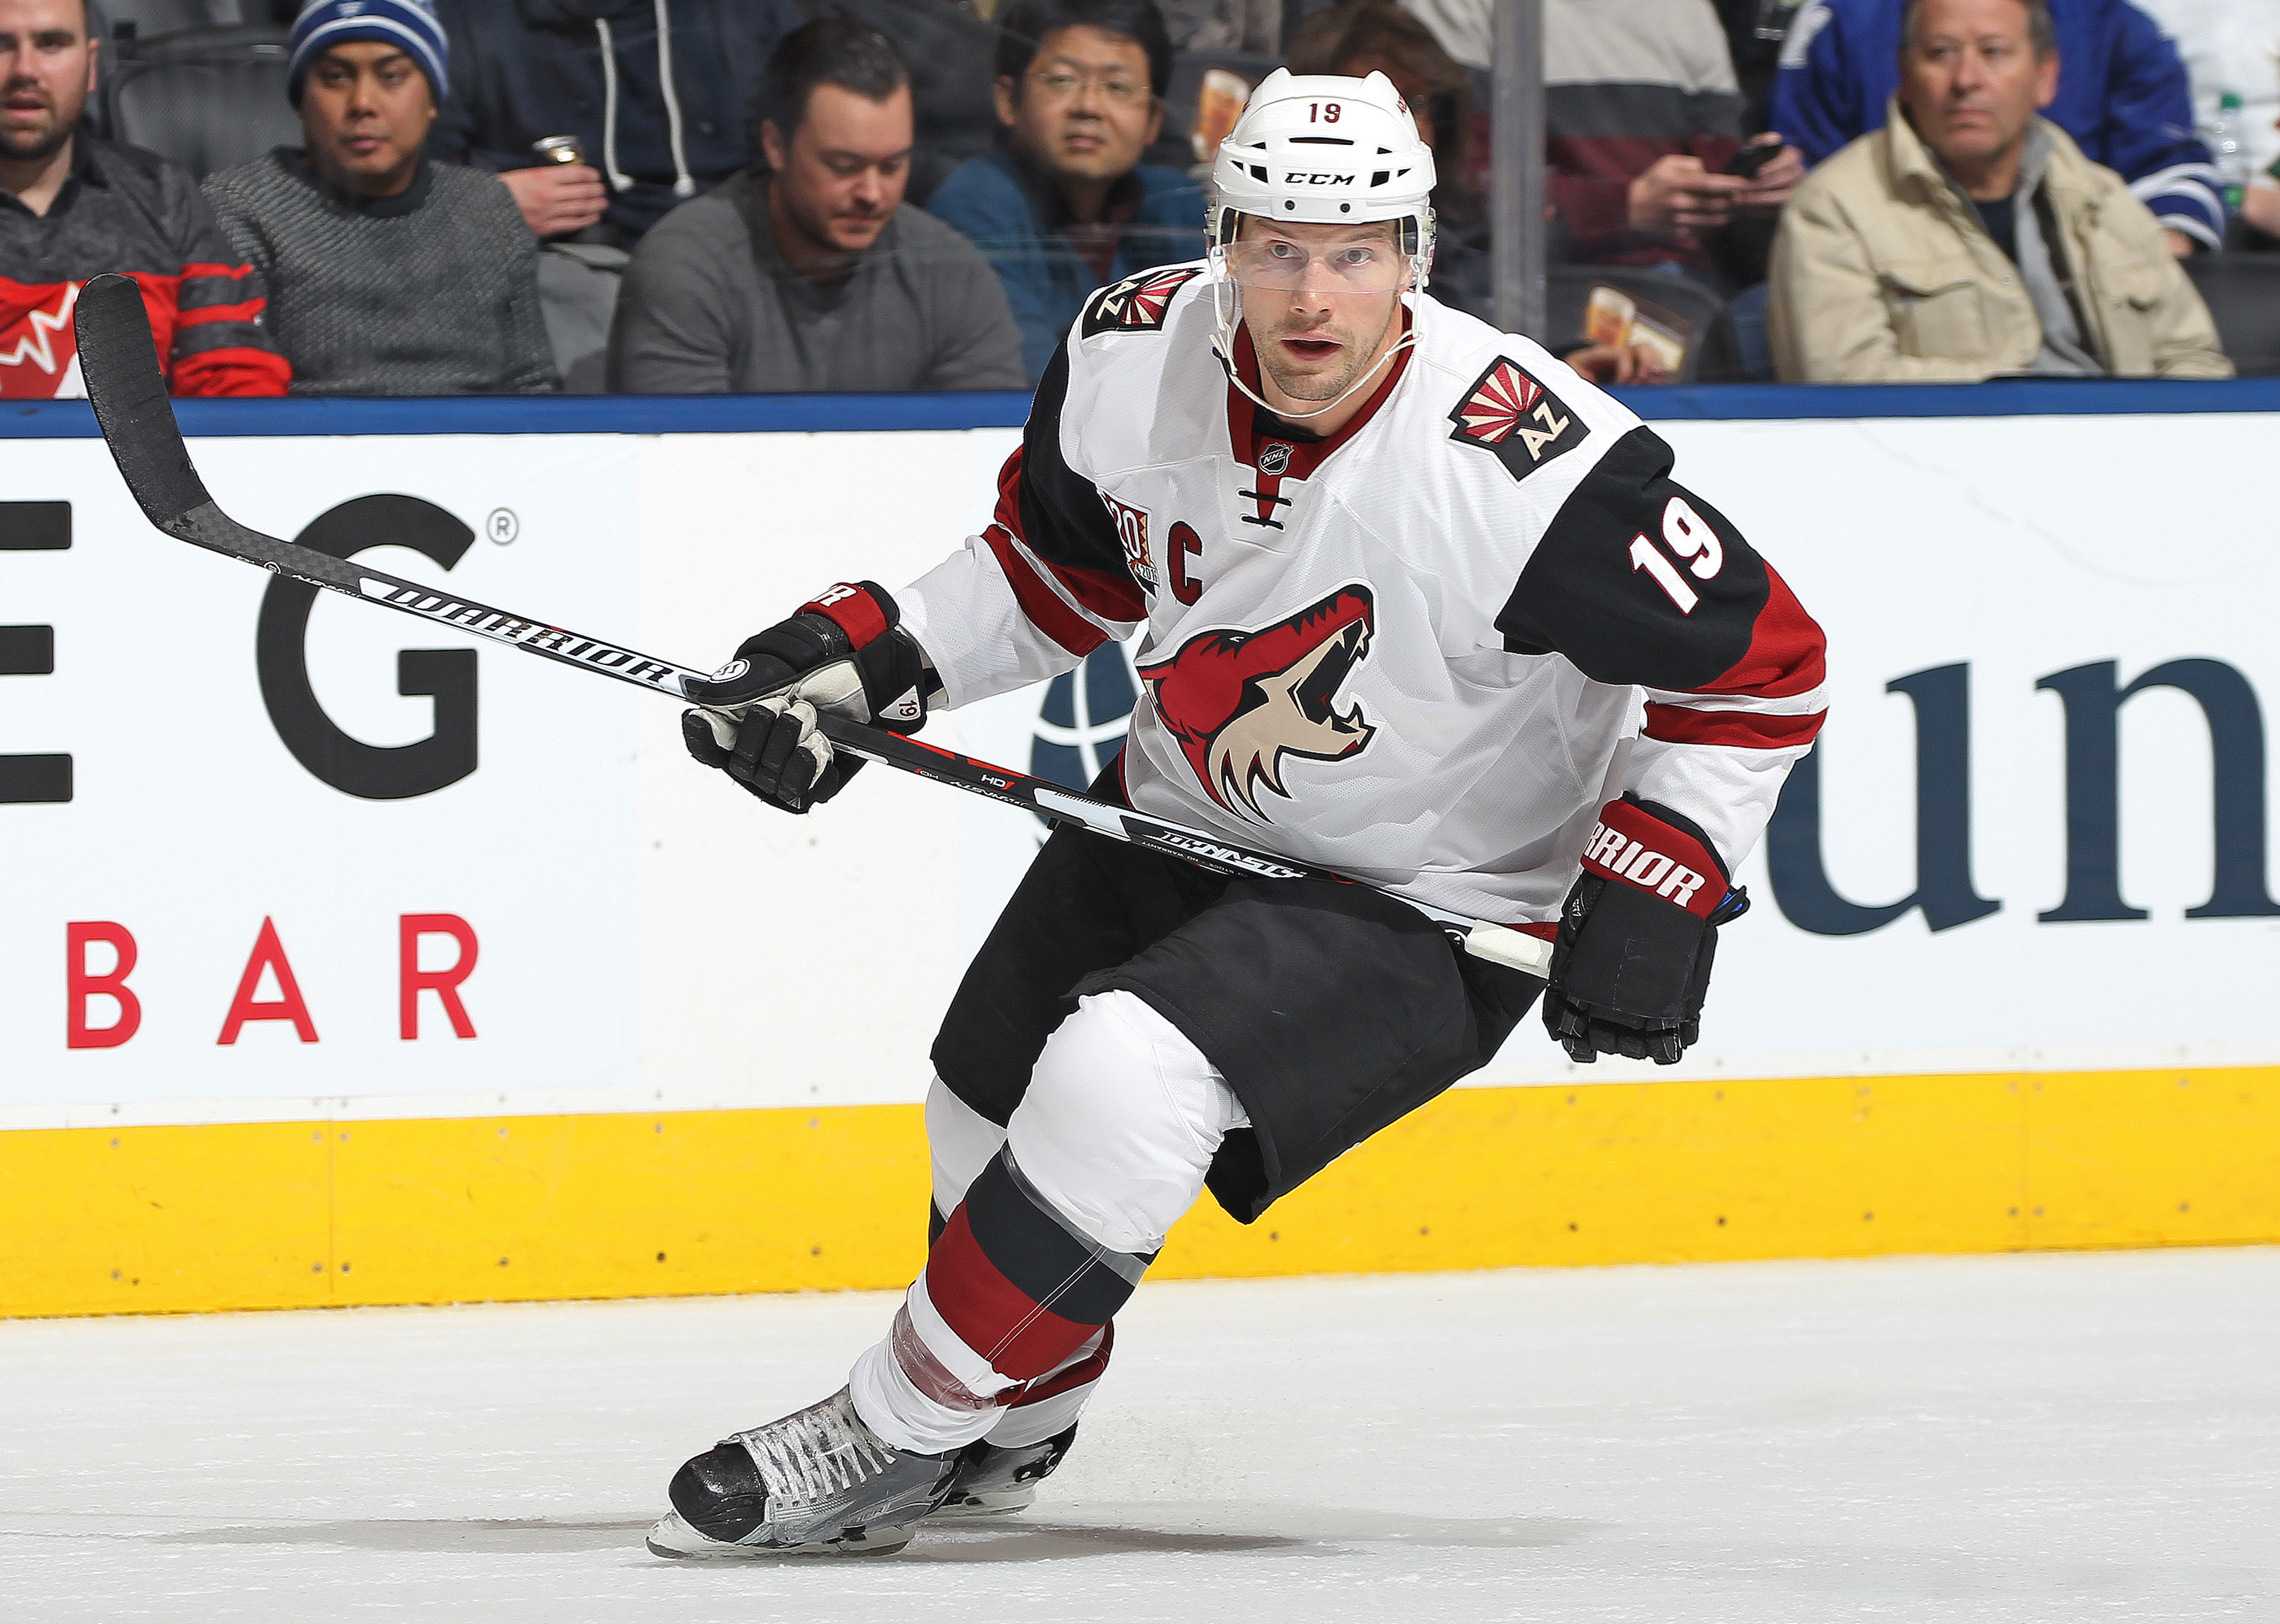 Shane Doan has spent his 21-year NHL career with the Arizona Coyotes organization. (Getty Images)